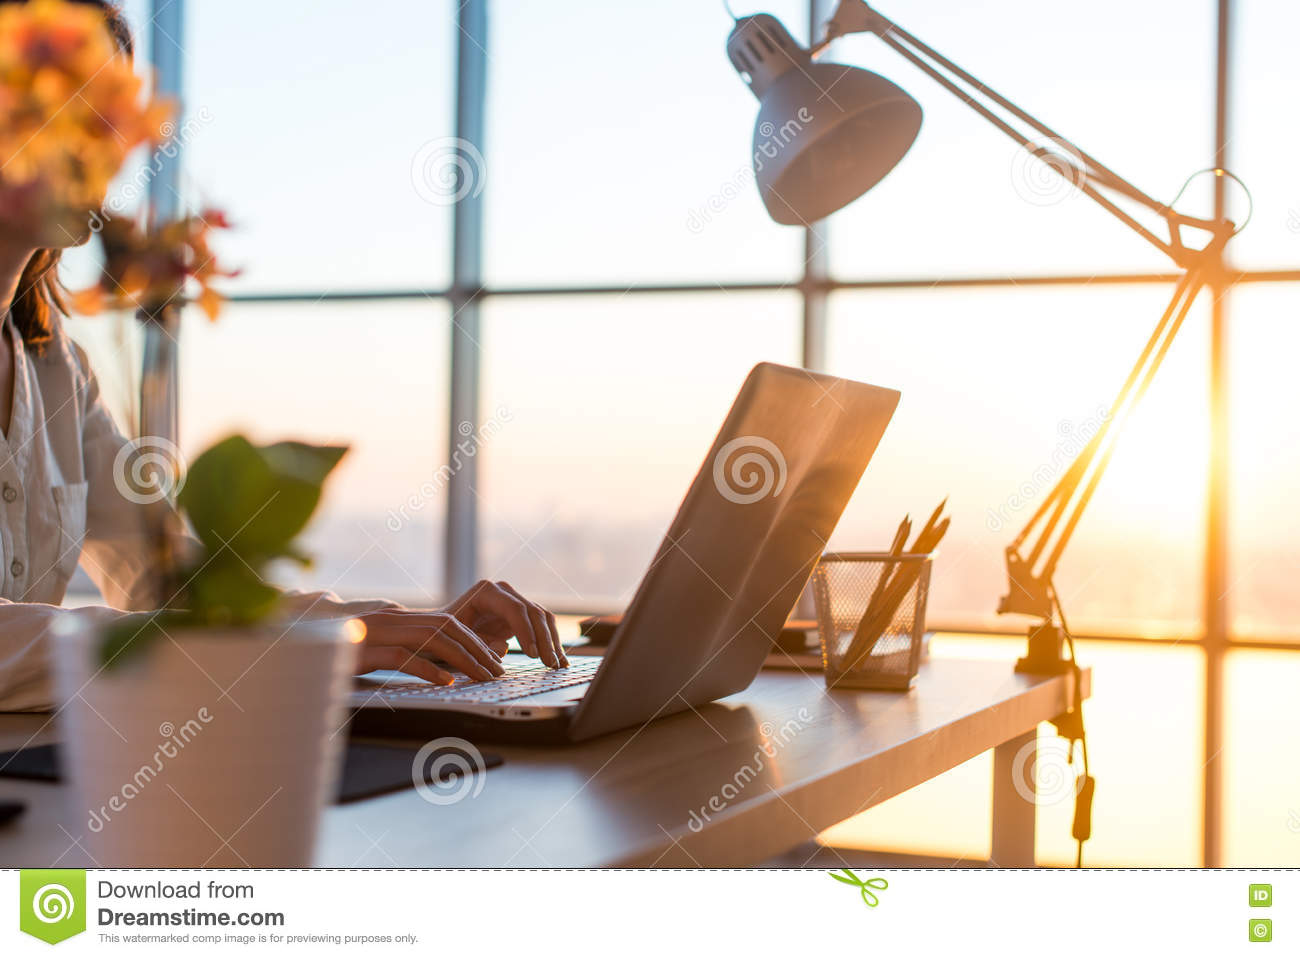 Adult businesswoman working at home using computer, studying business ideas on a pc screen